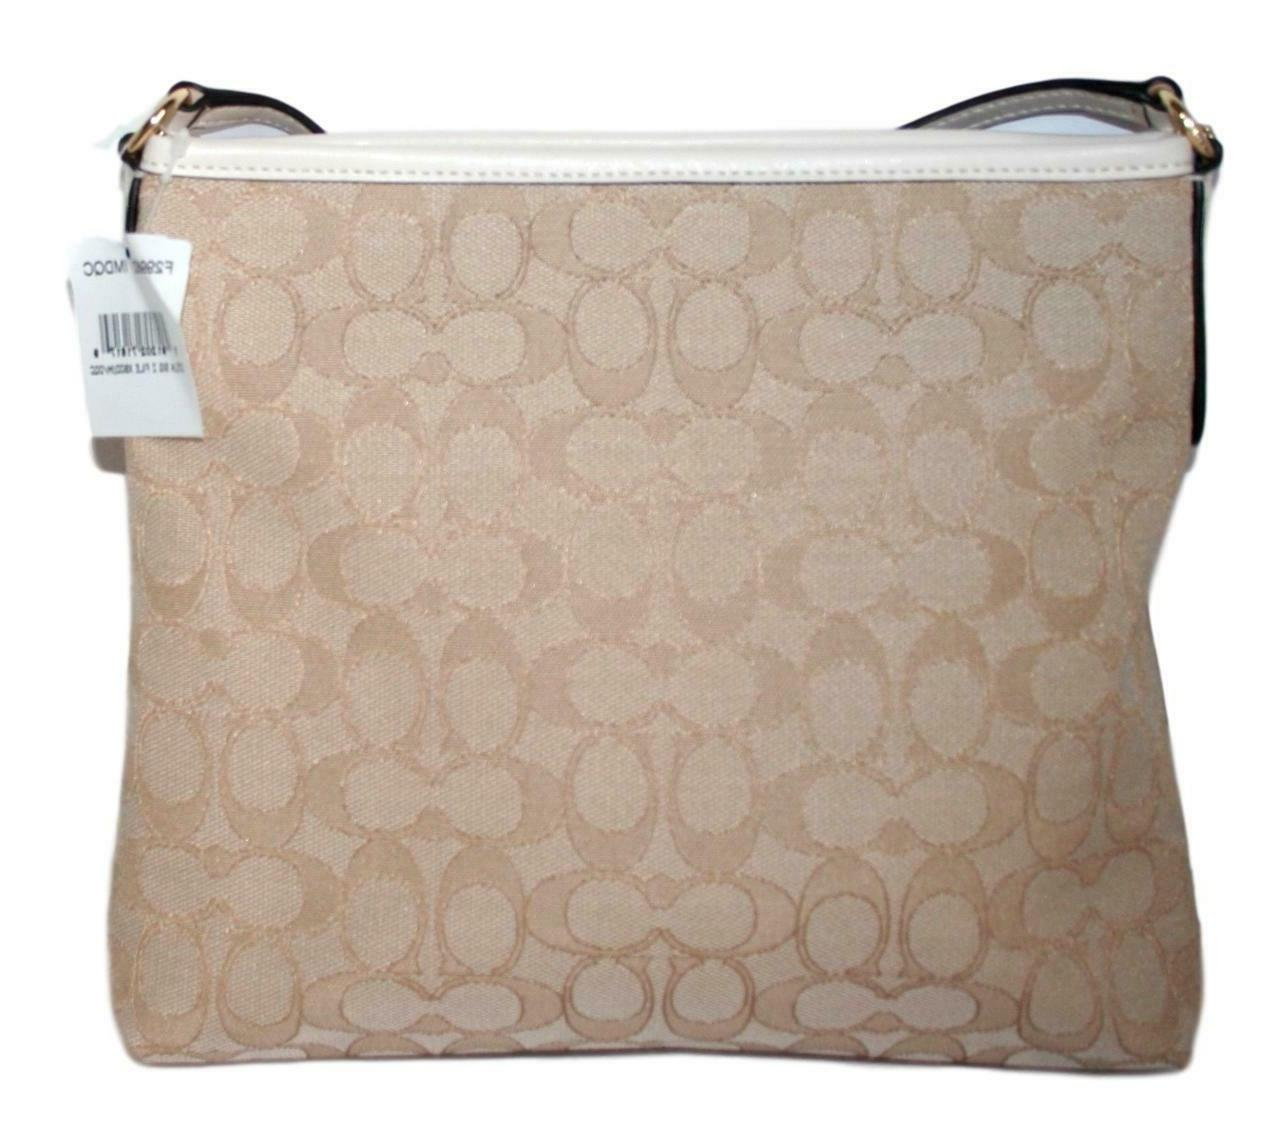 Coach Jacquard File Bag Crossbody Purse Handbag F29960